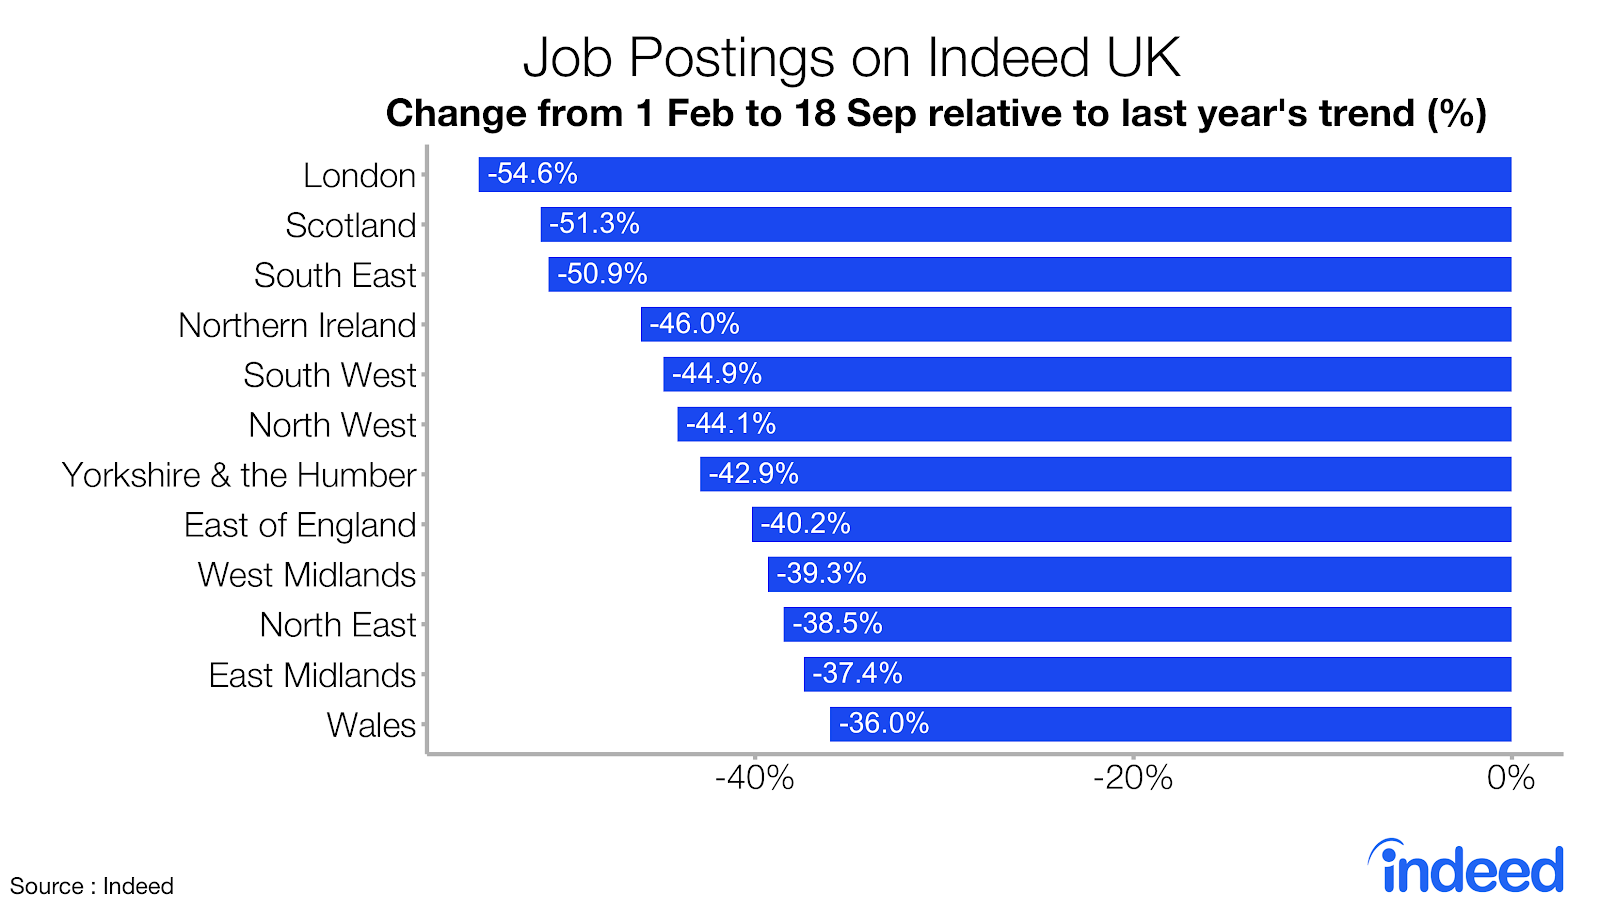 Bar graph showing job postings on Indeed UK